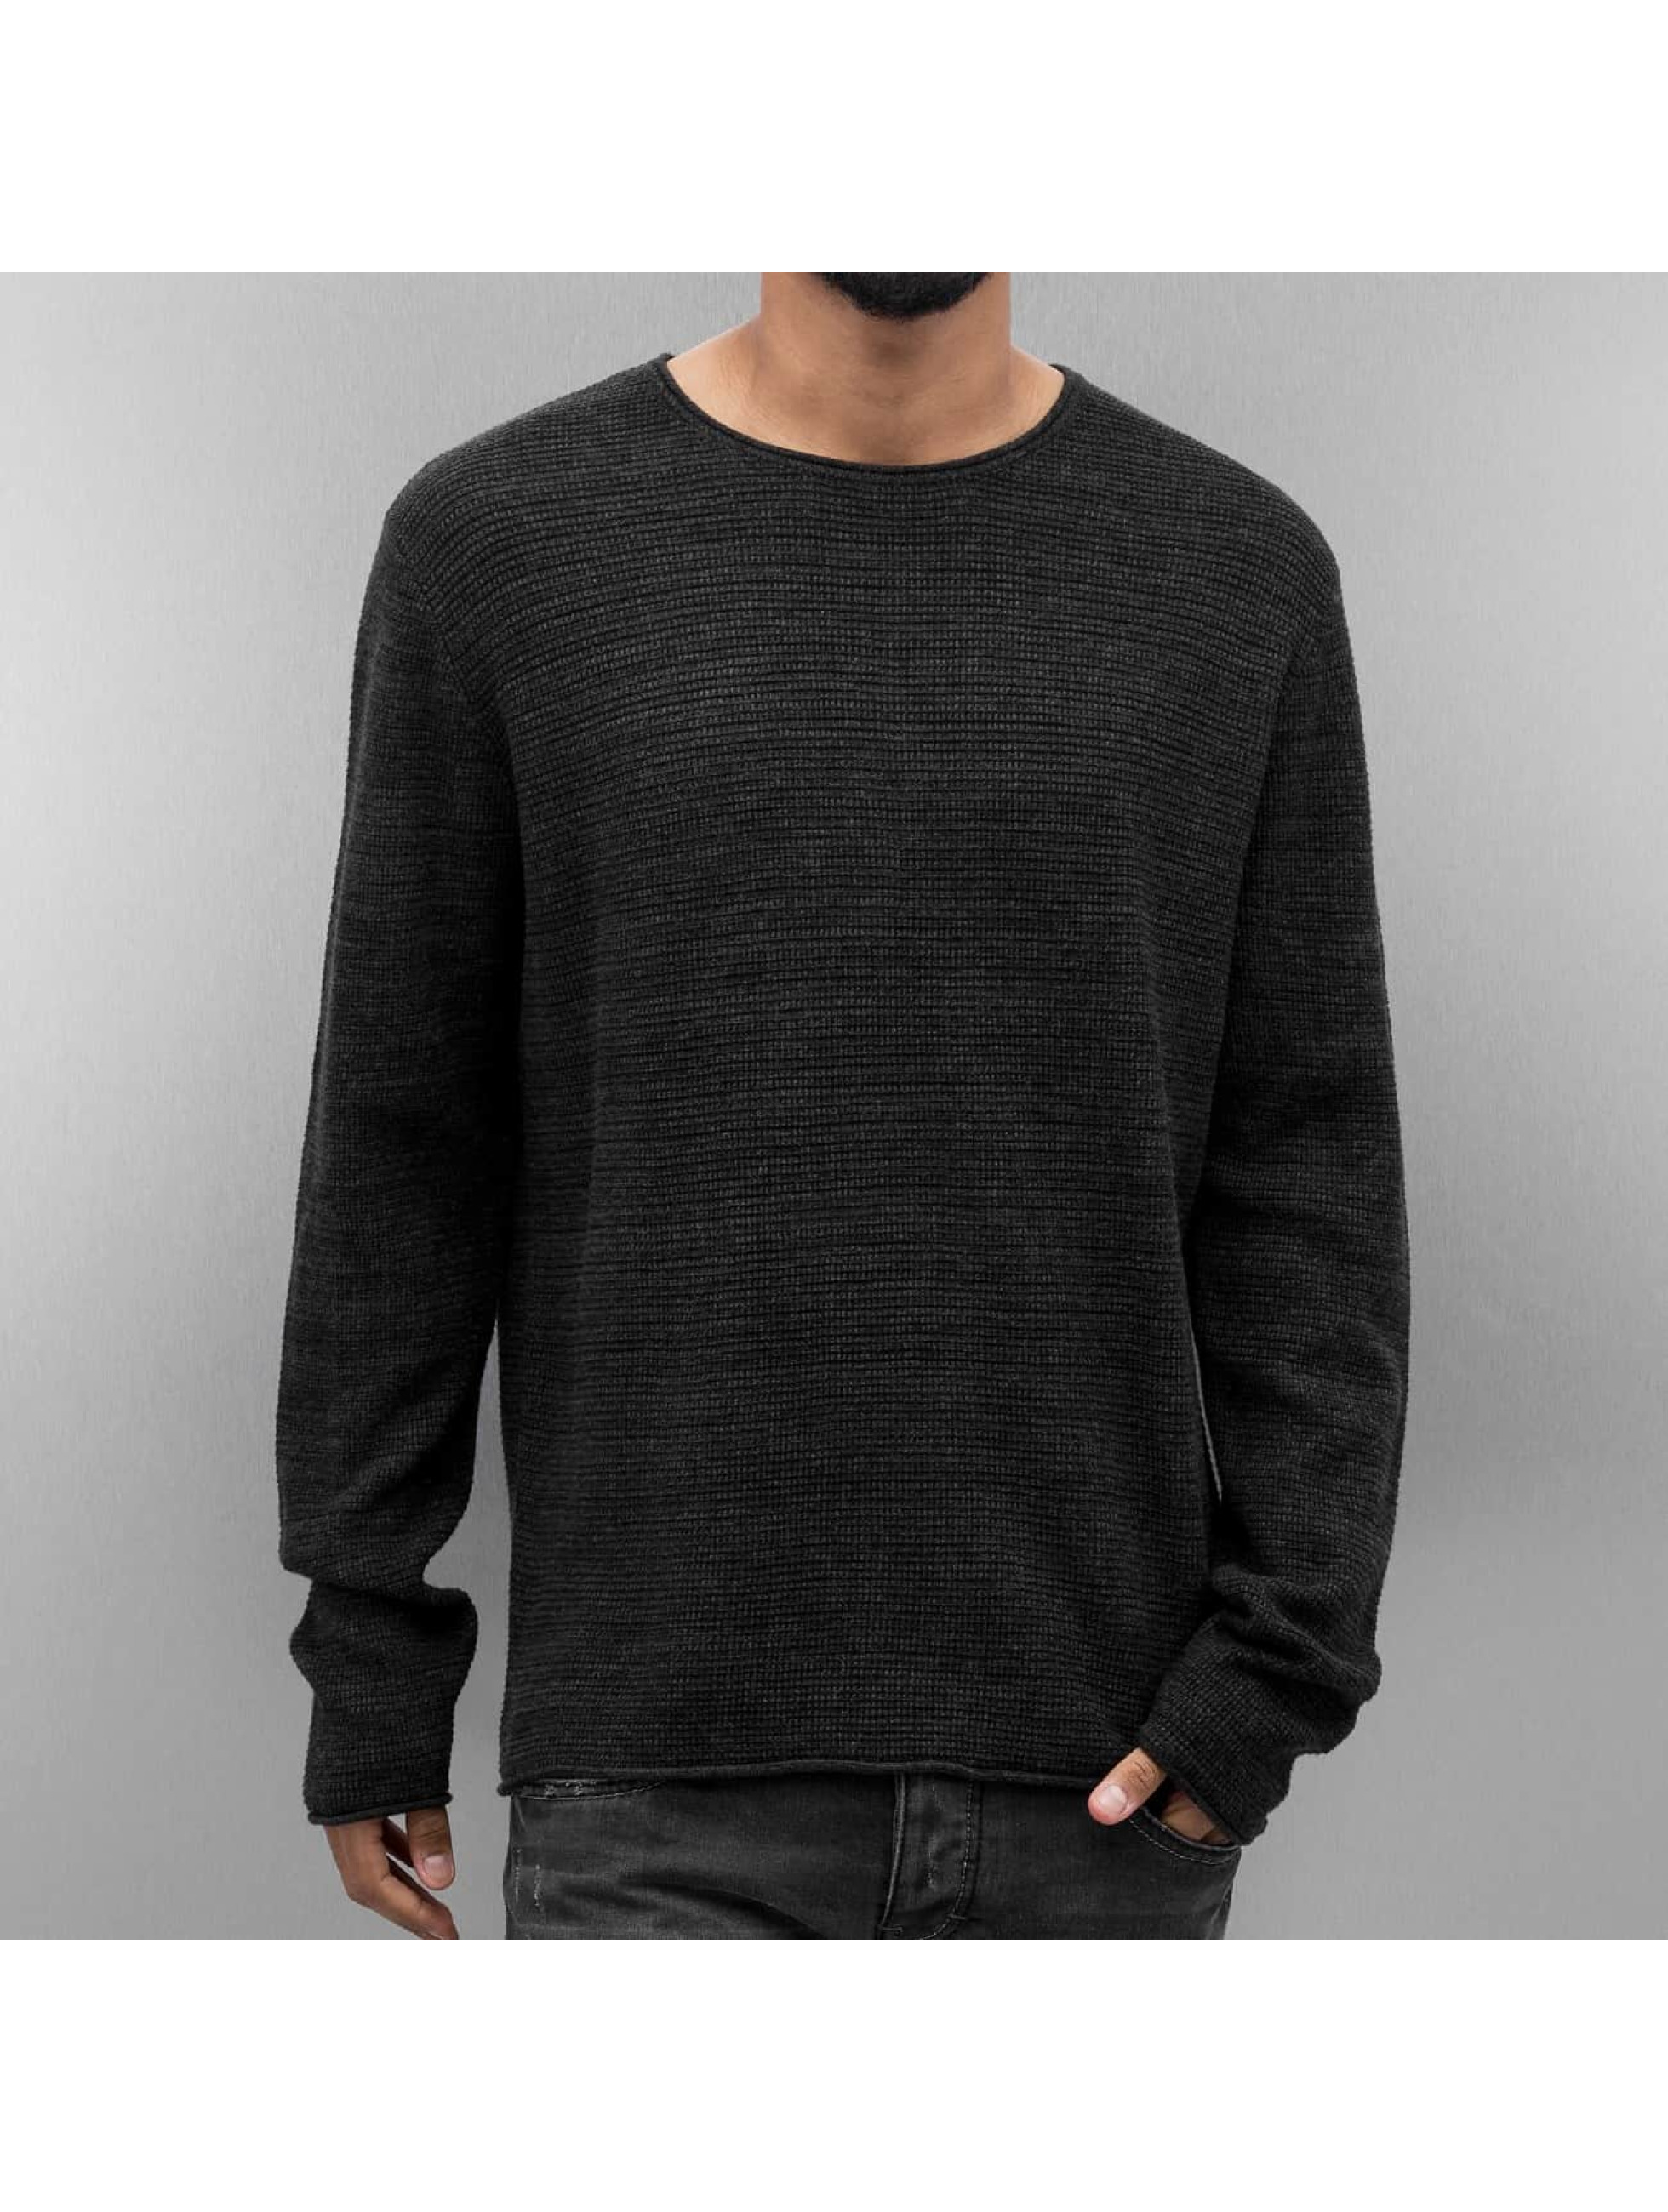 Jack & Jones Sweat & Pull jjorAxel Knit noir